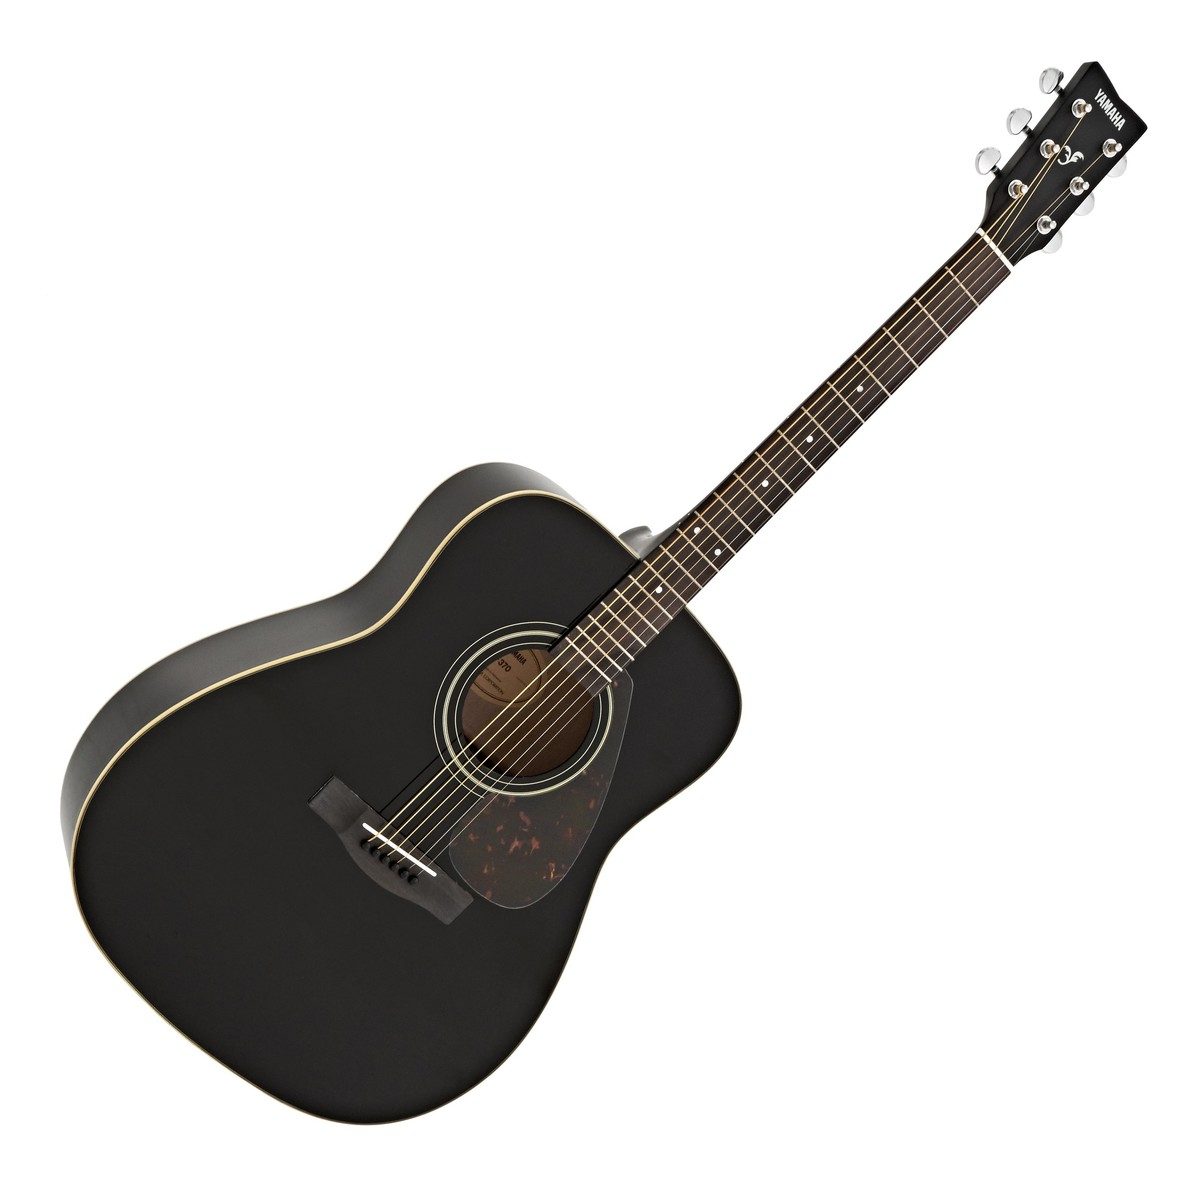 Yamaha f370 acoustic guitar black at for Yamaha acoustic bass guitar